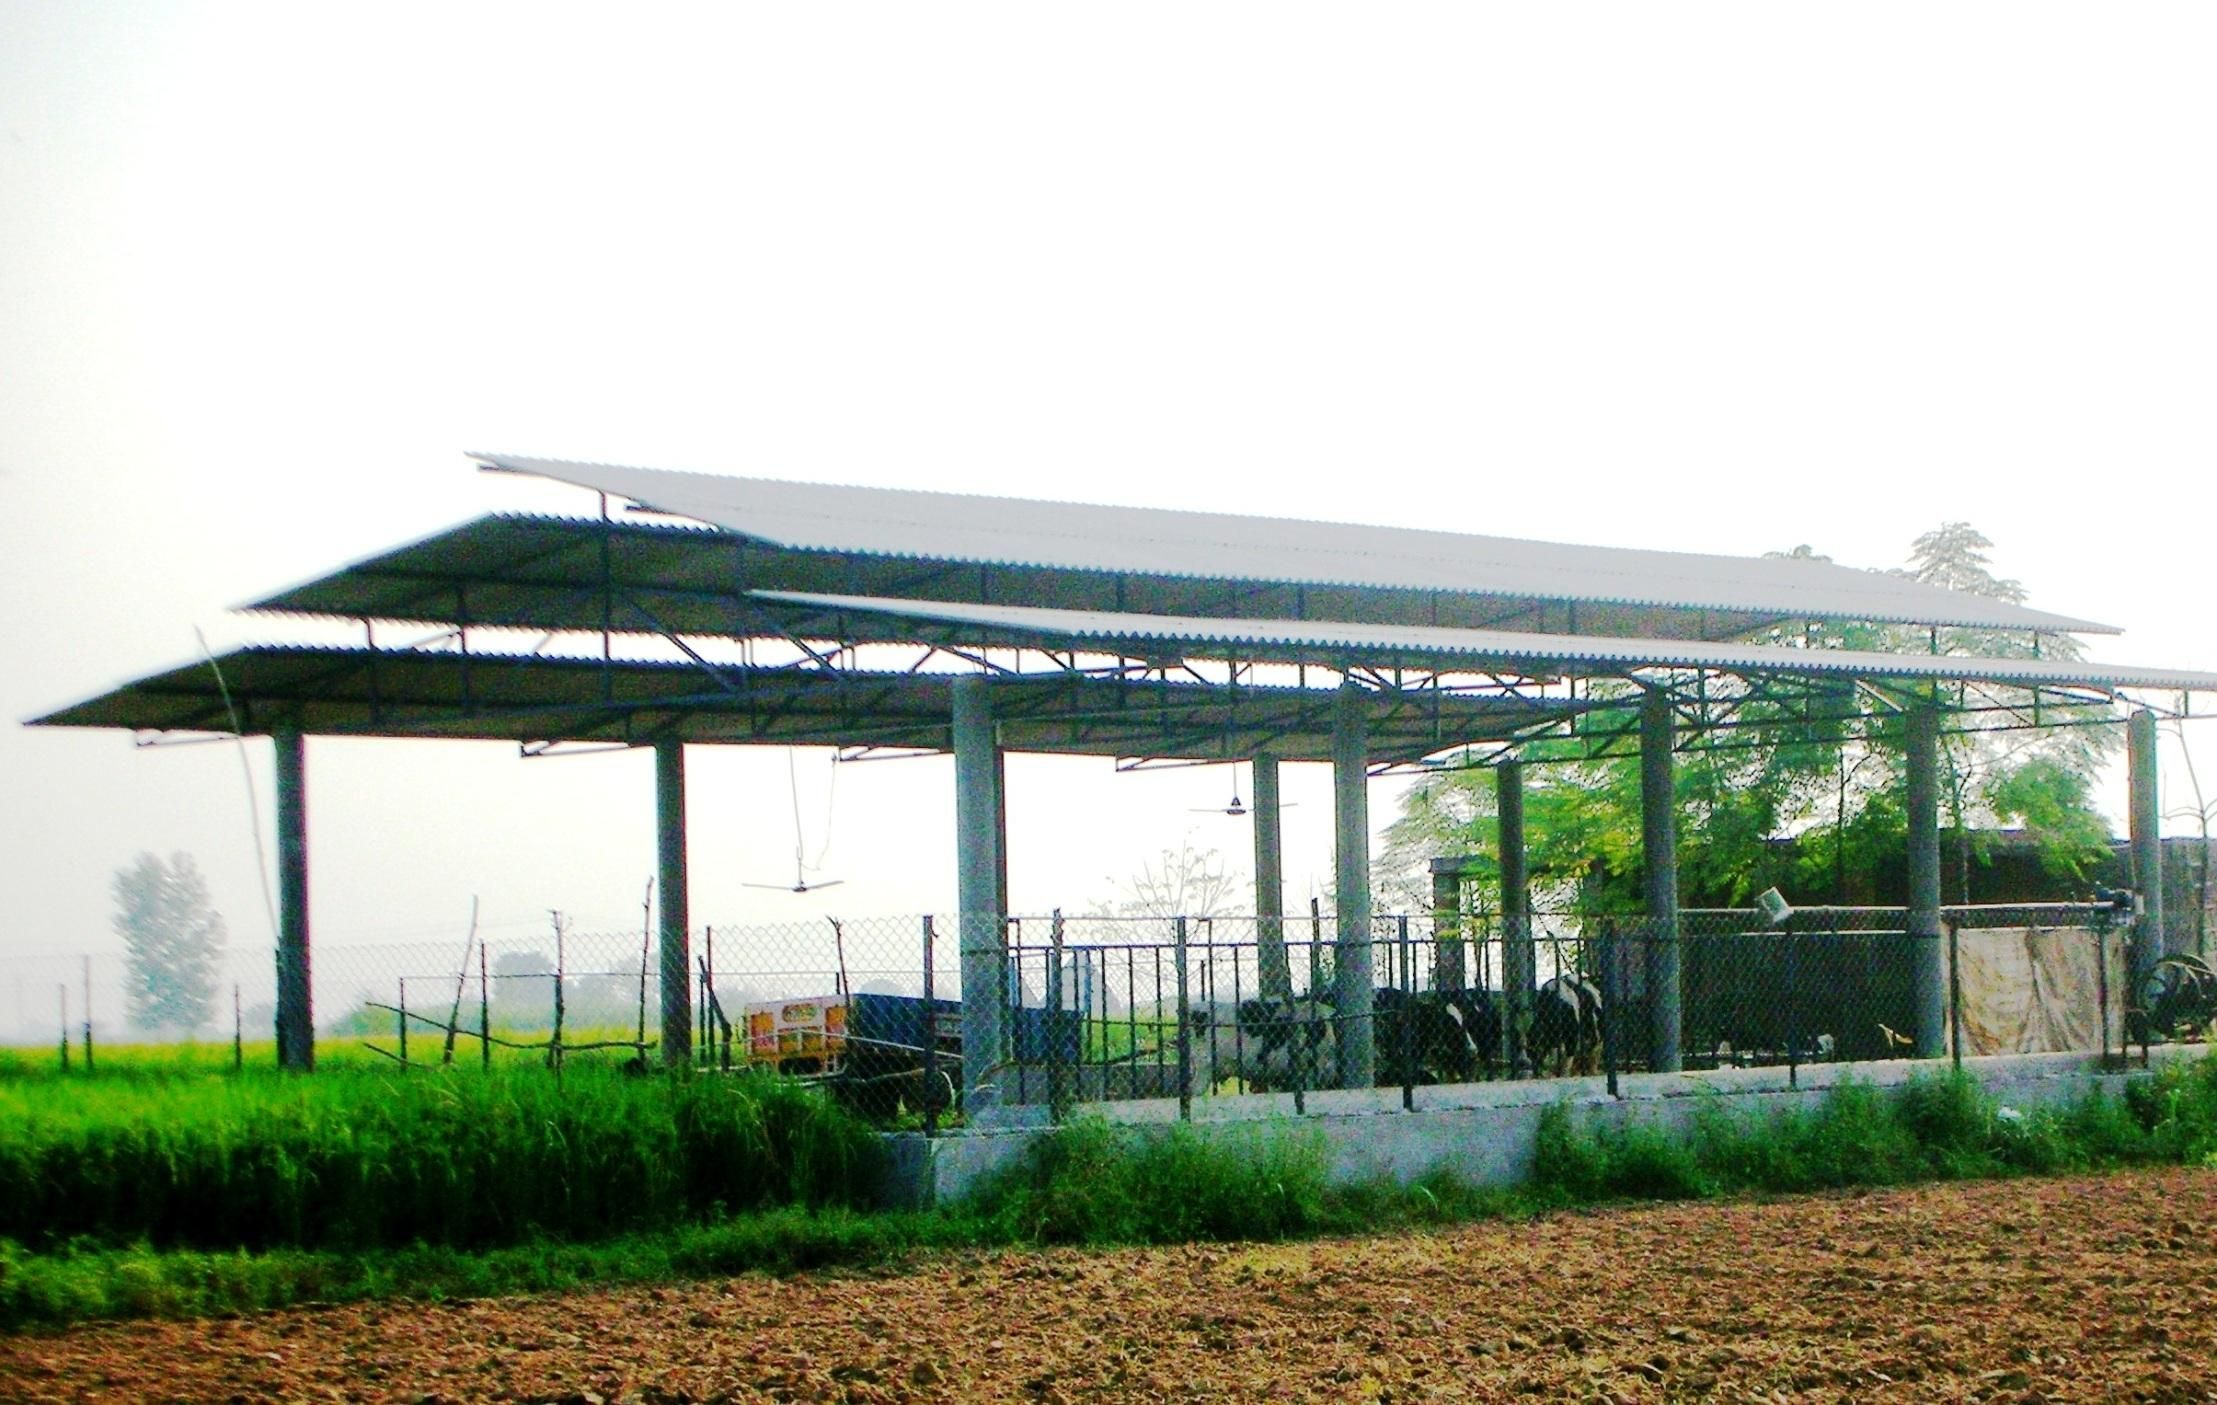 Modern cattle sheds punjabarchitect sarbjit singh bahga chandigarh punjab is an agrarian state and milk production as an integral part of agriculture